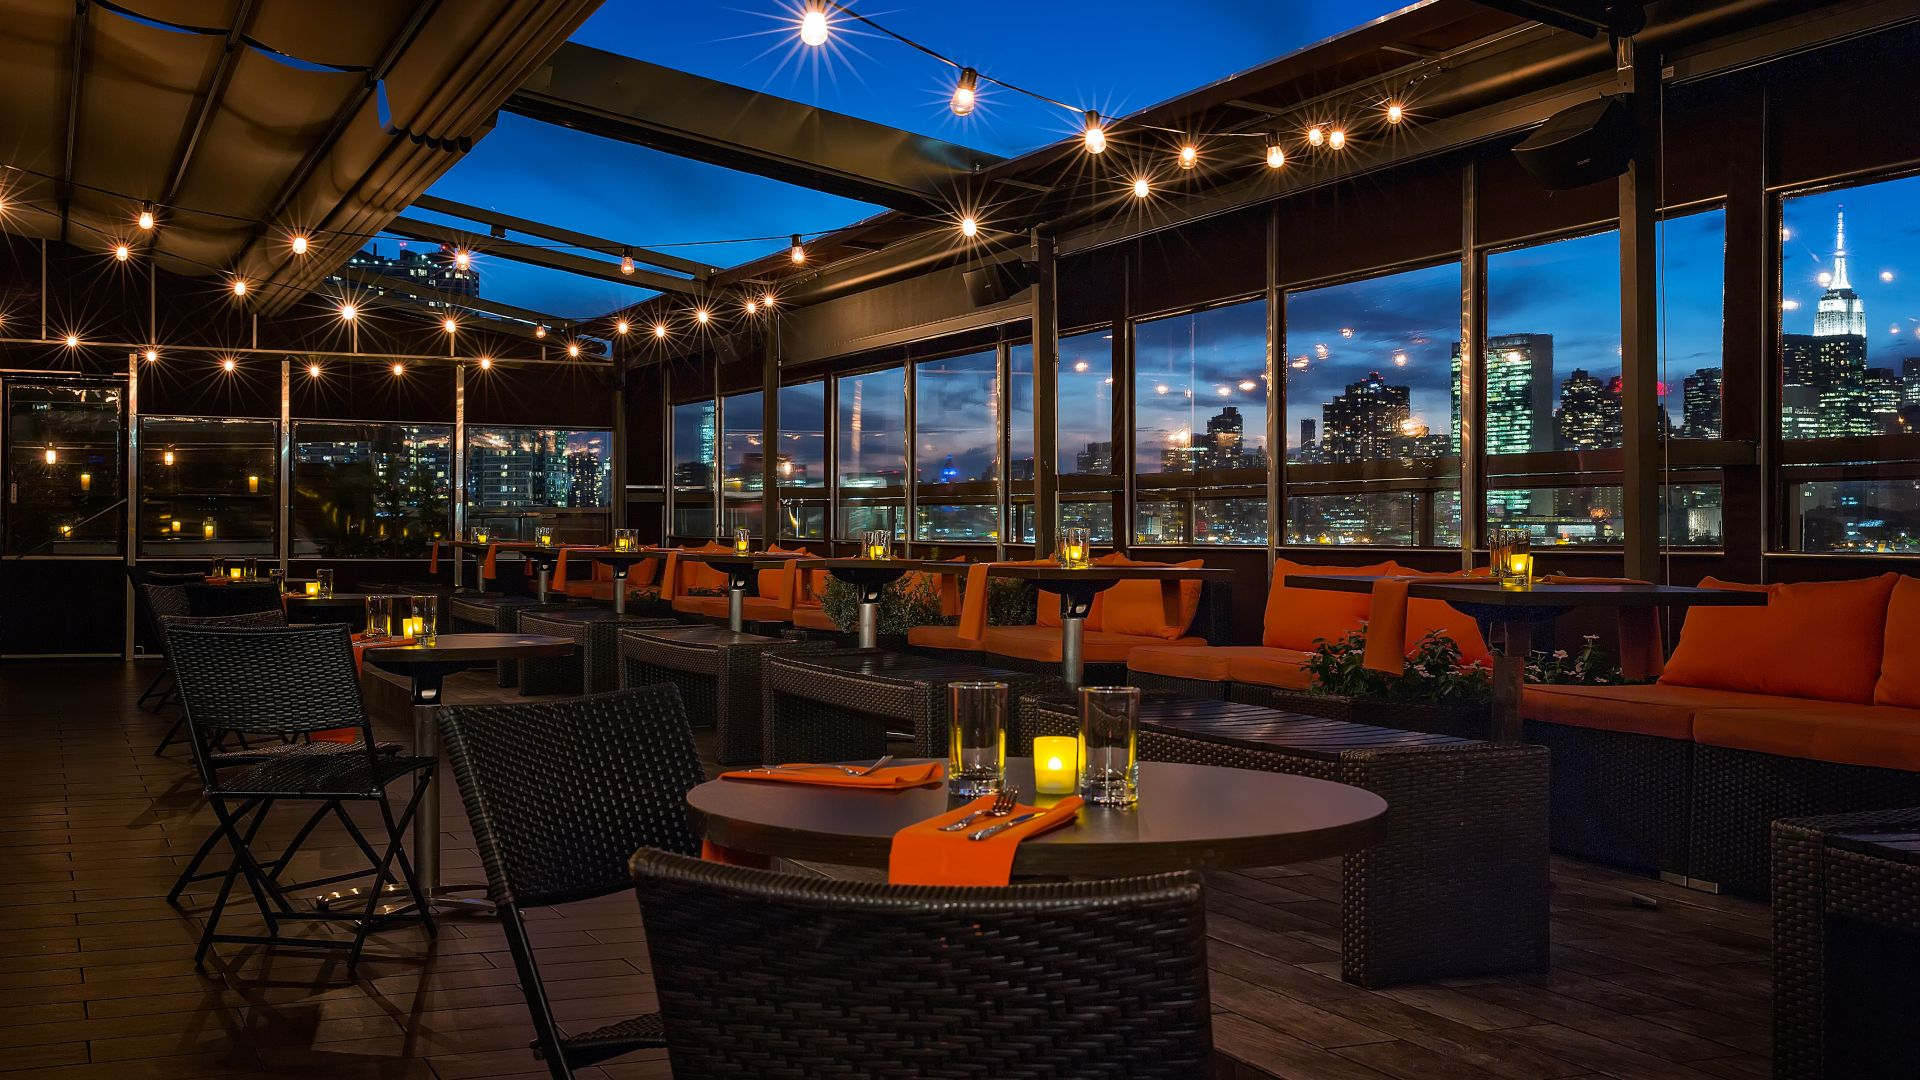 The Penthouse | Eat, Drink & Dance in Our Enclosed & Heated Rooftop Restaurant | Learn More